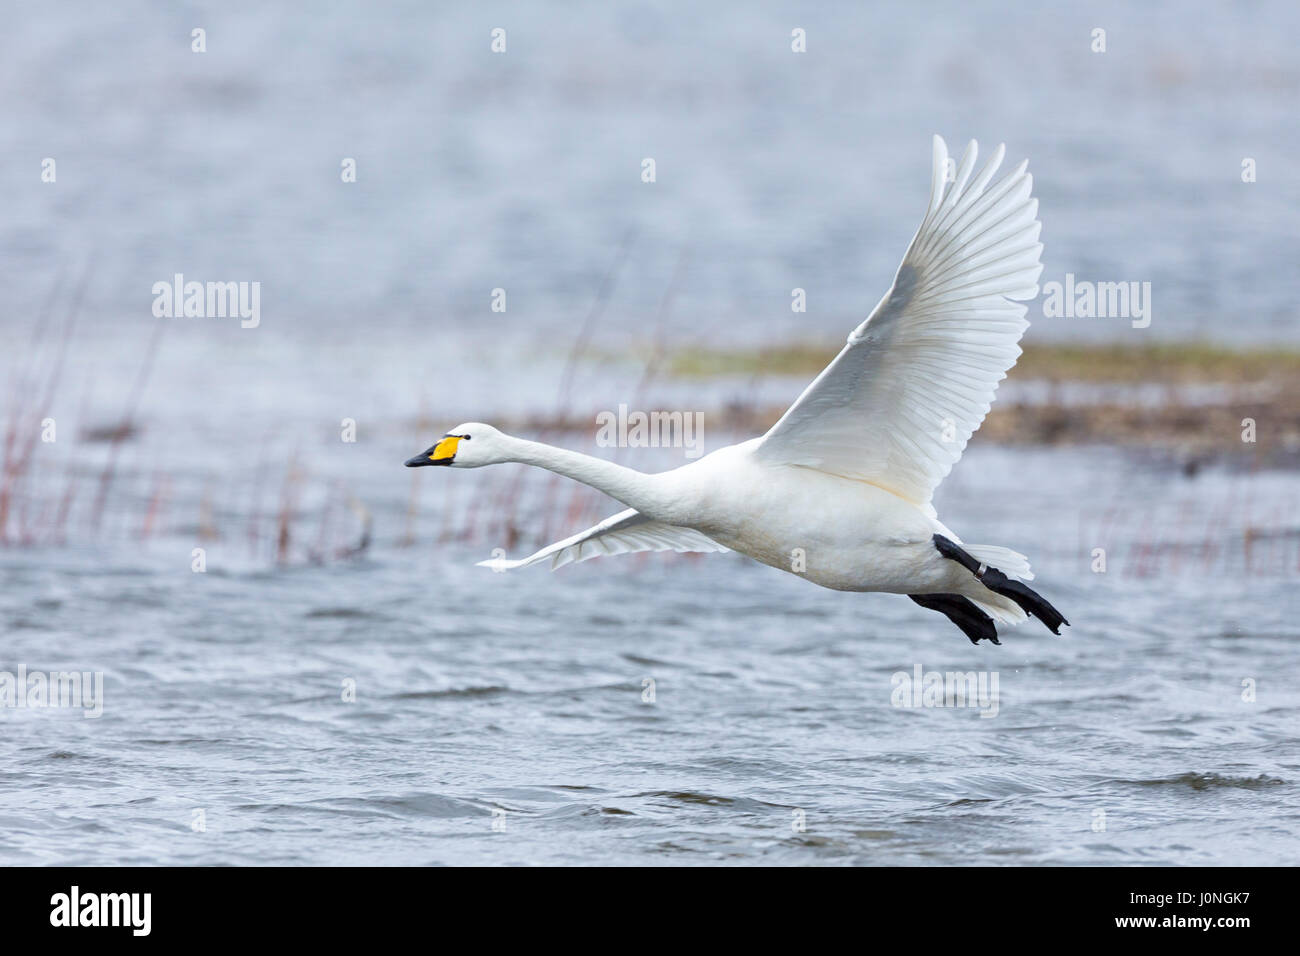 Whooper Swan, Cygnus cygnus, in flight and coming in to land with wings and feathers spread wide at Welney Wetland - Stock Image